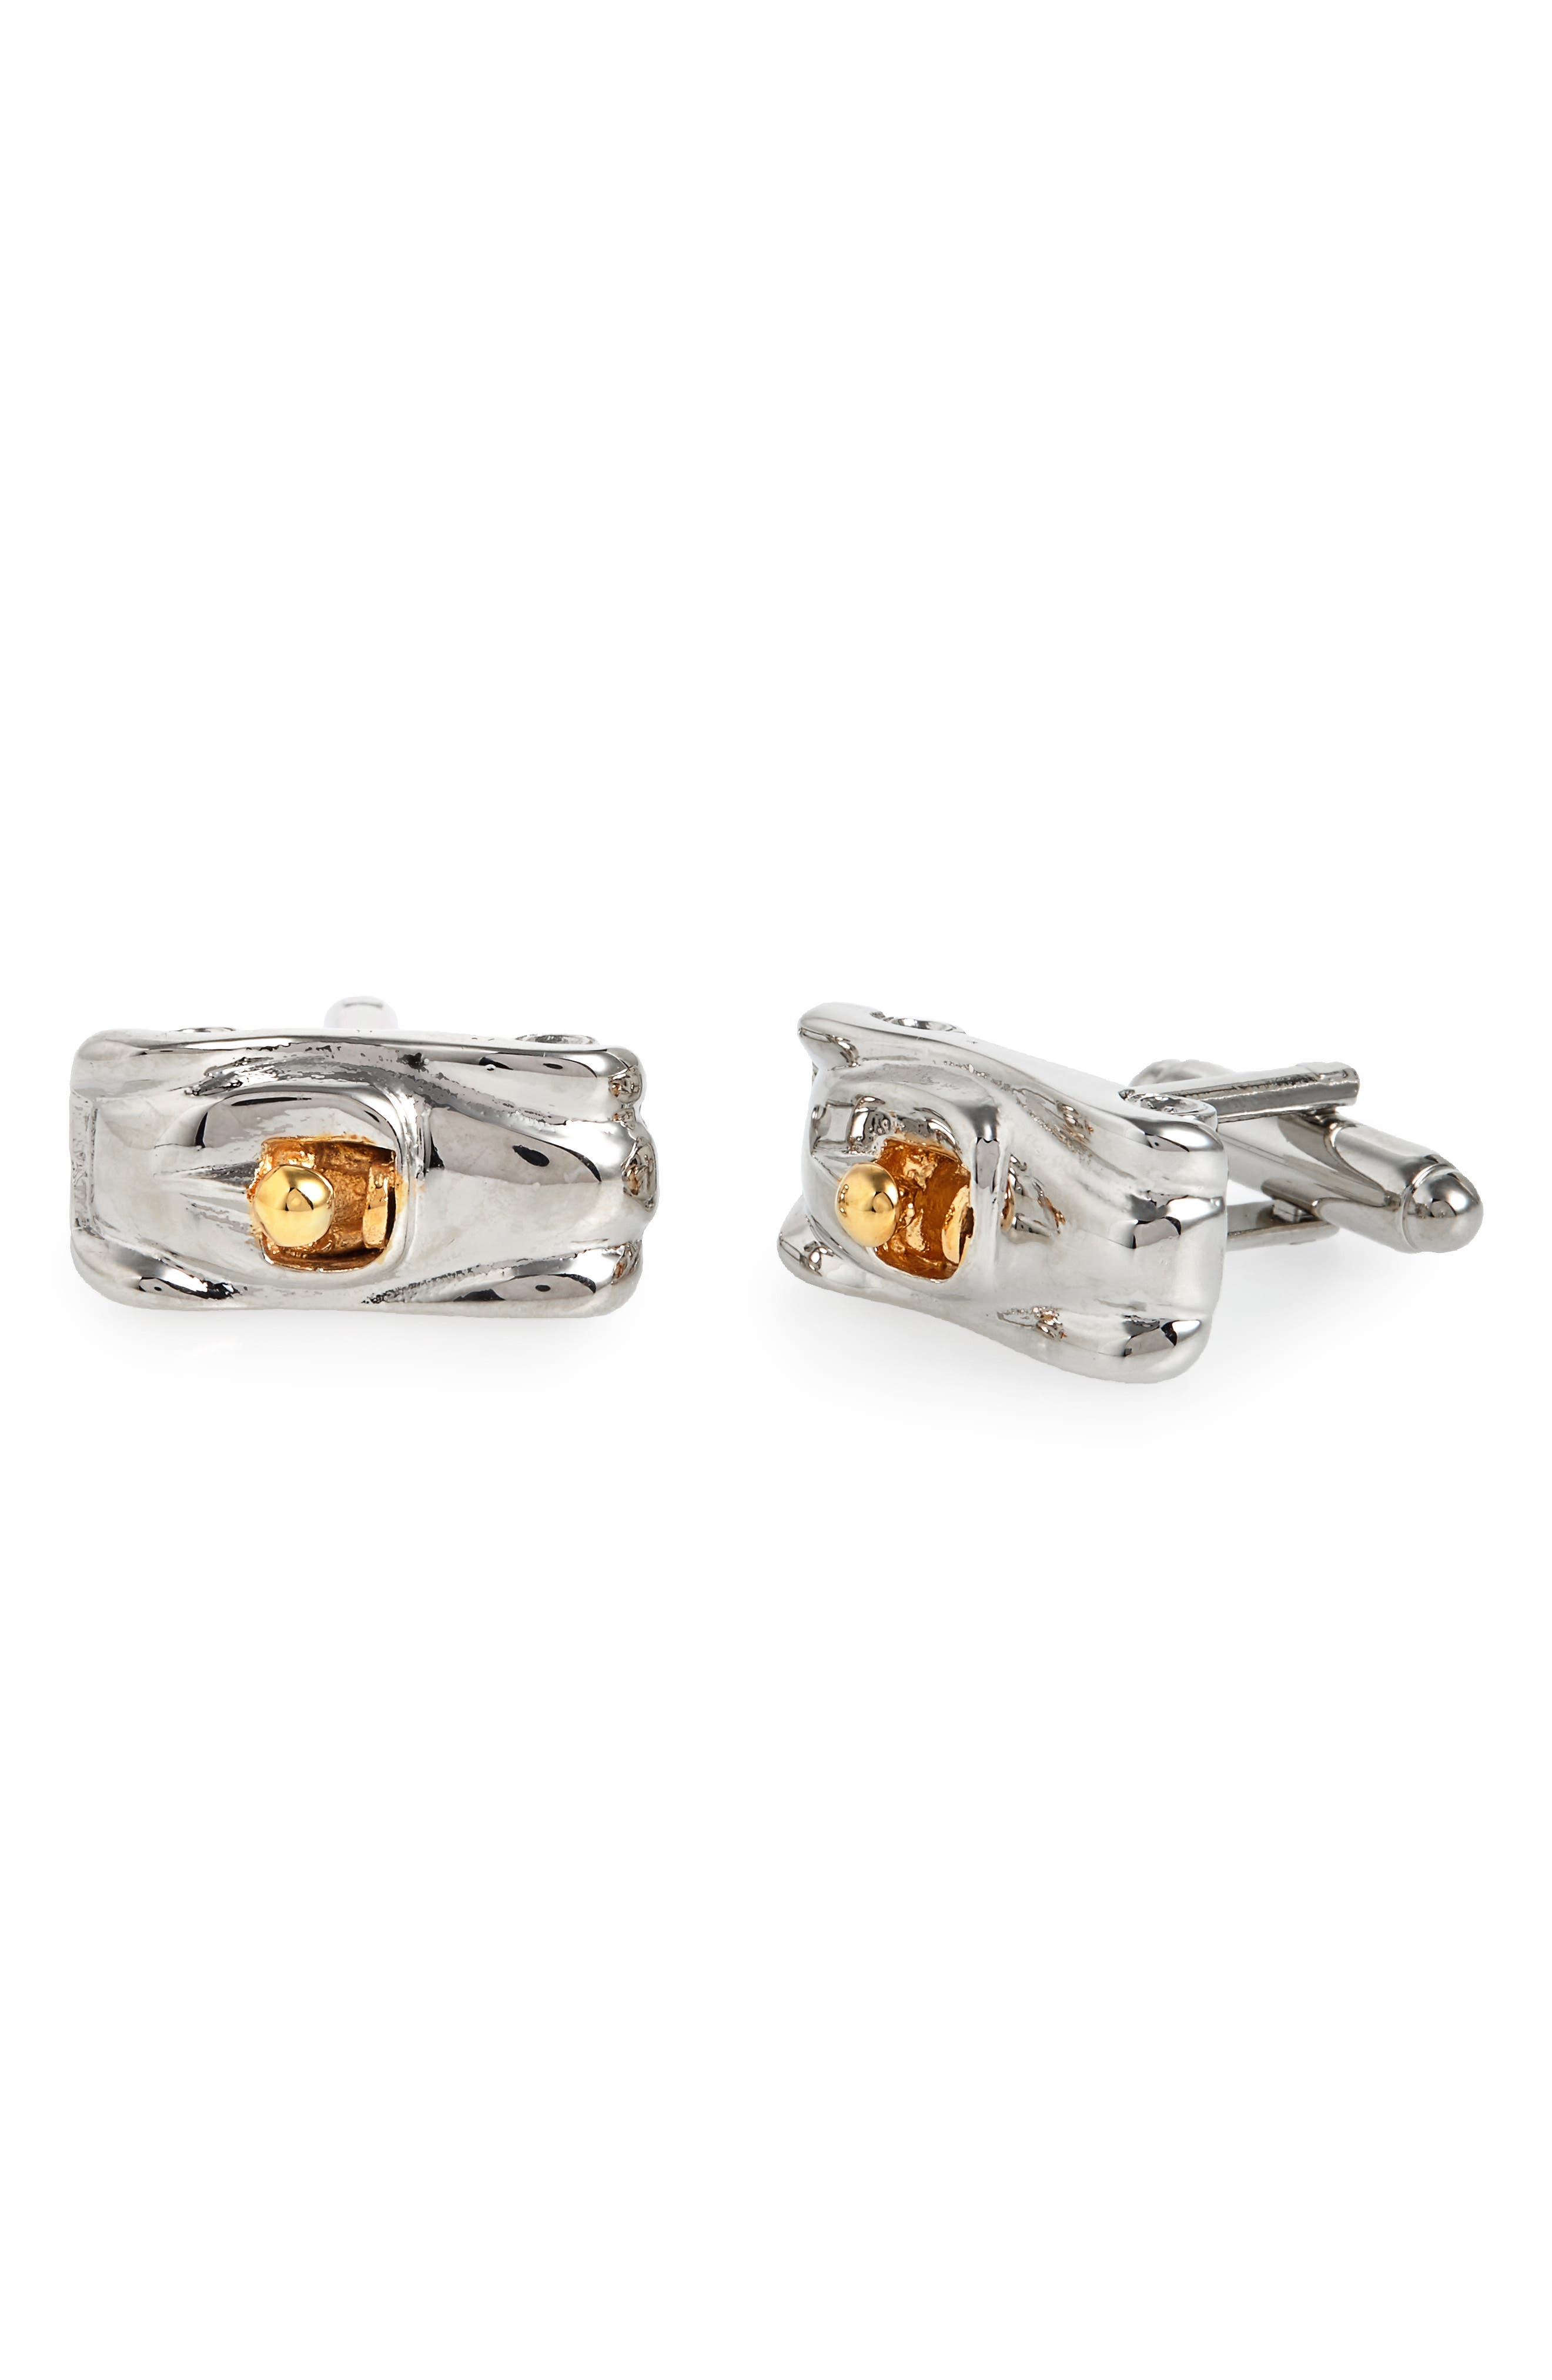 LINK UP Speed Racer Cuff Links